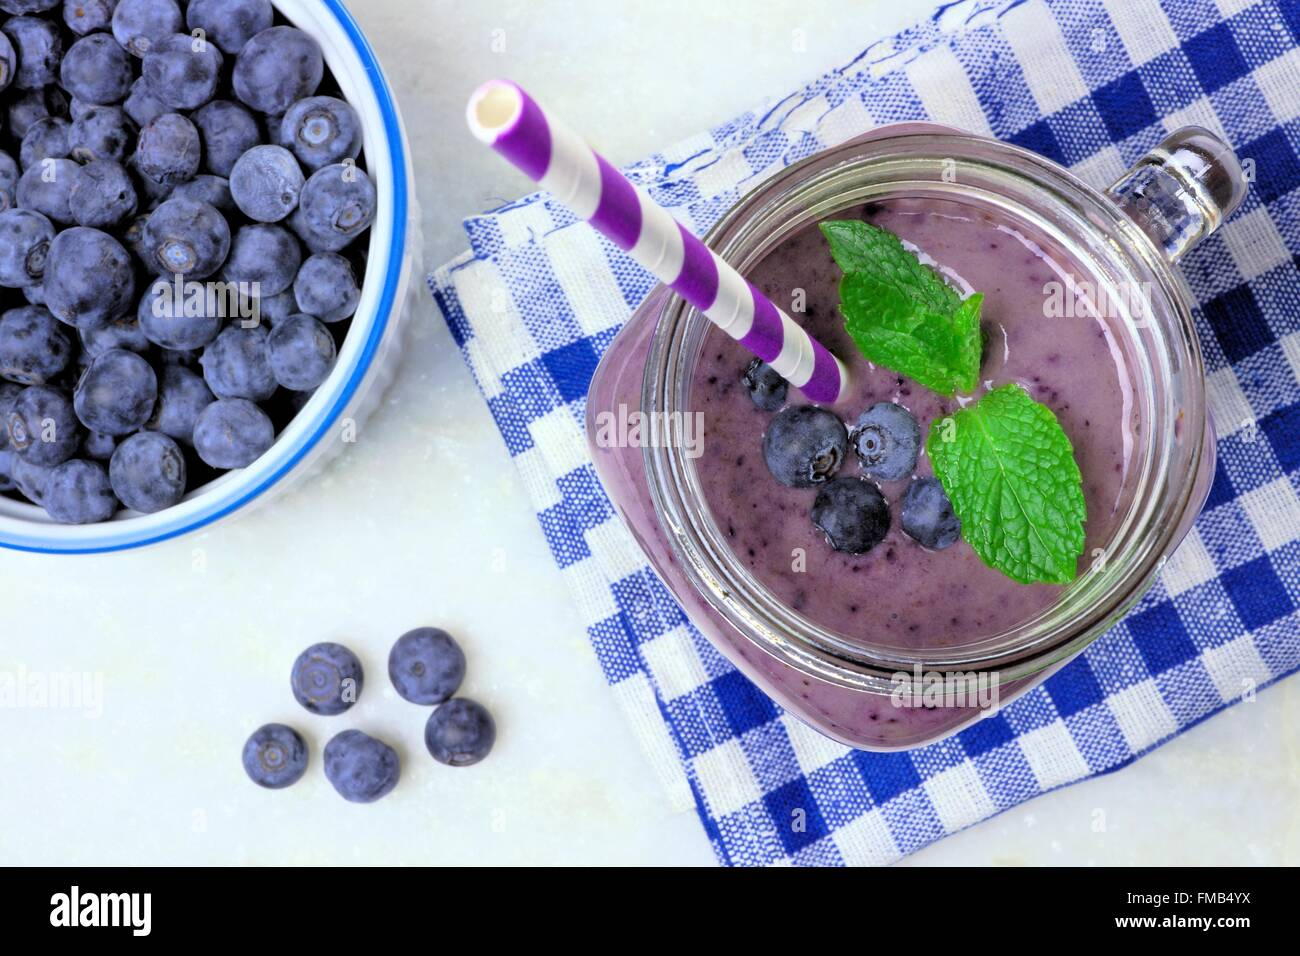 Blueberry smoothie with mint in mason jar mug, downward view on white marble - Stock Image